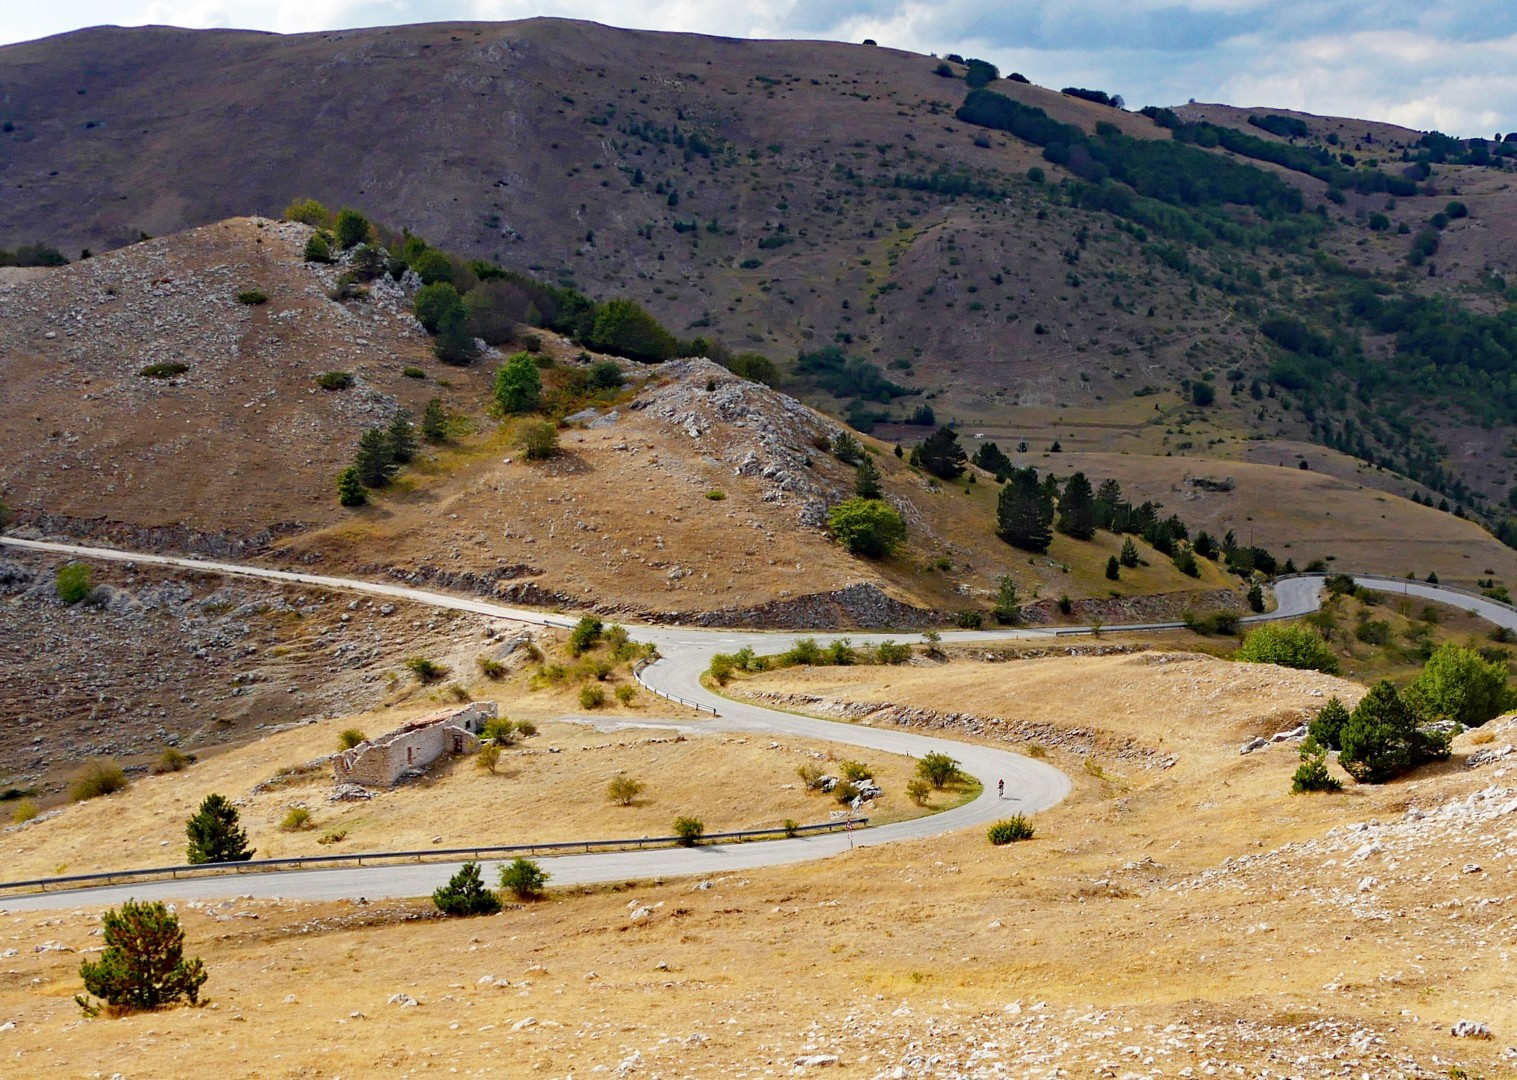 ride-up-in-the-appenines-road-cycling-italy.jpg - Italy - Grand Traverse - South to North (22 days) - Guided Road Cycling Holiday - Road Cycling